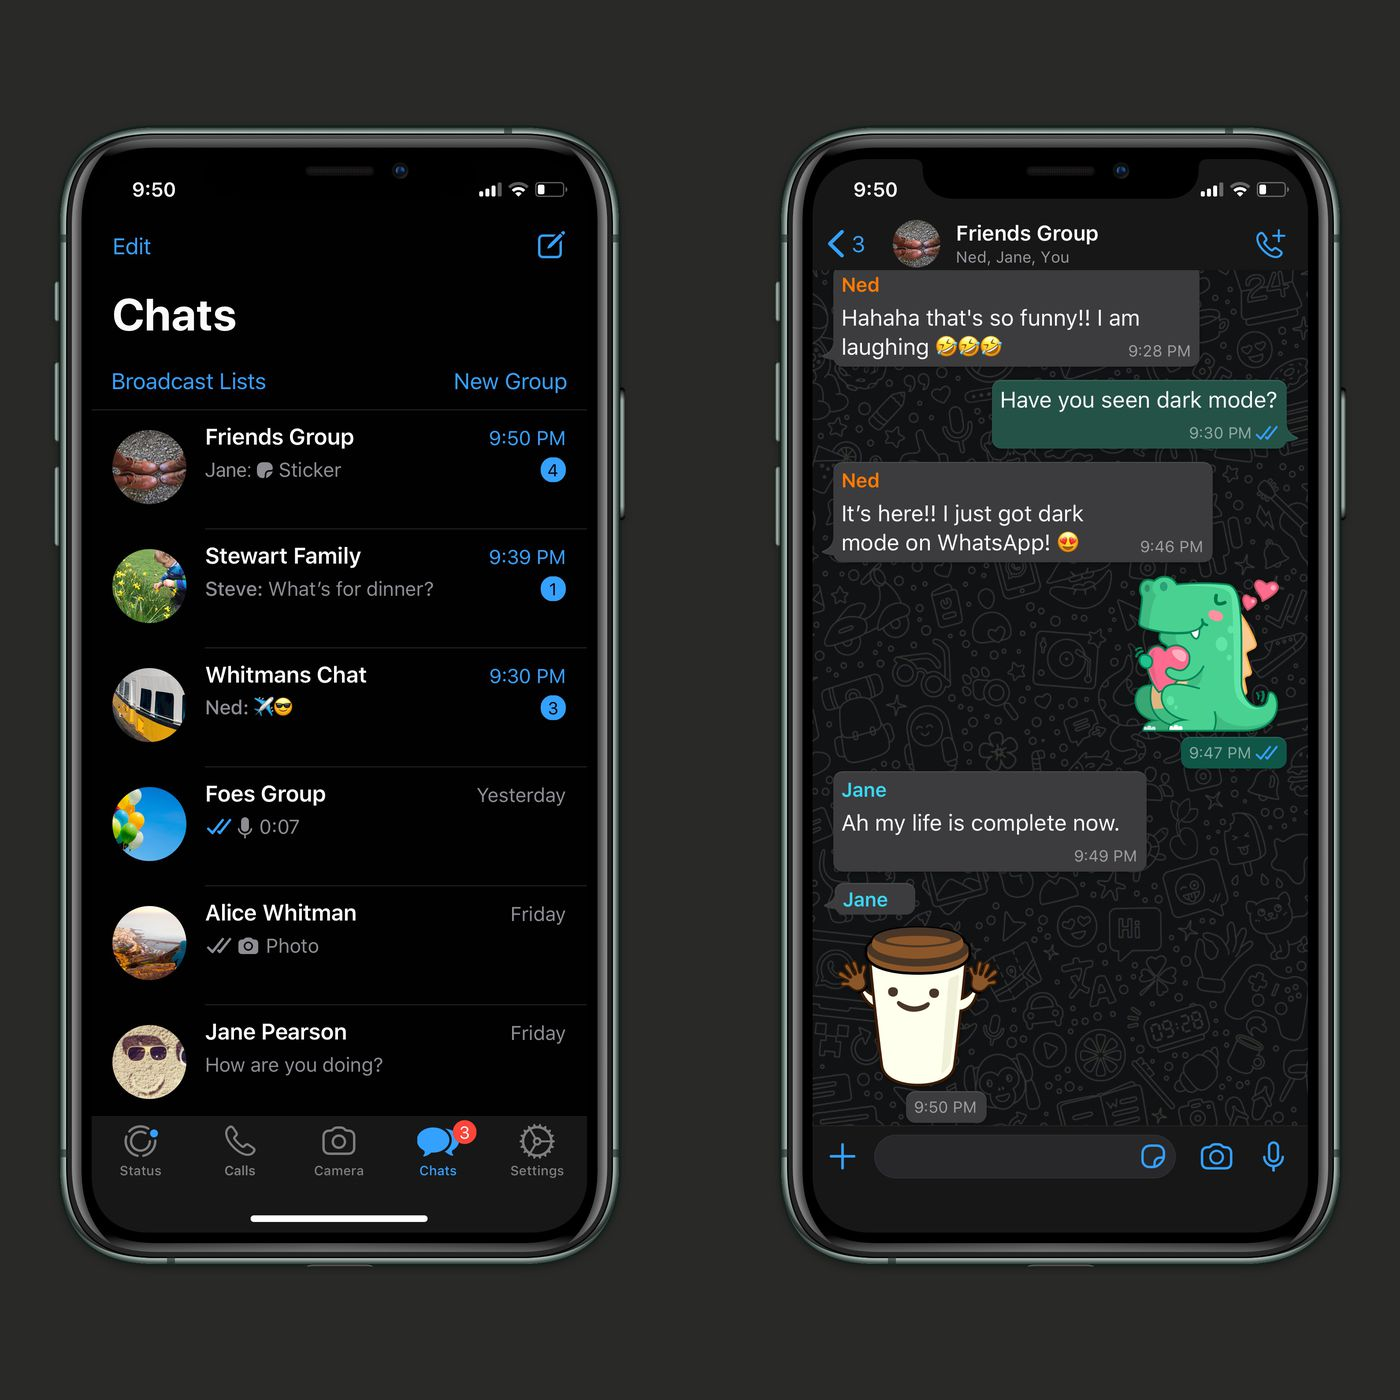 WhatsApp dark mode now available for iOS and Android - The Verge